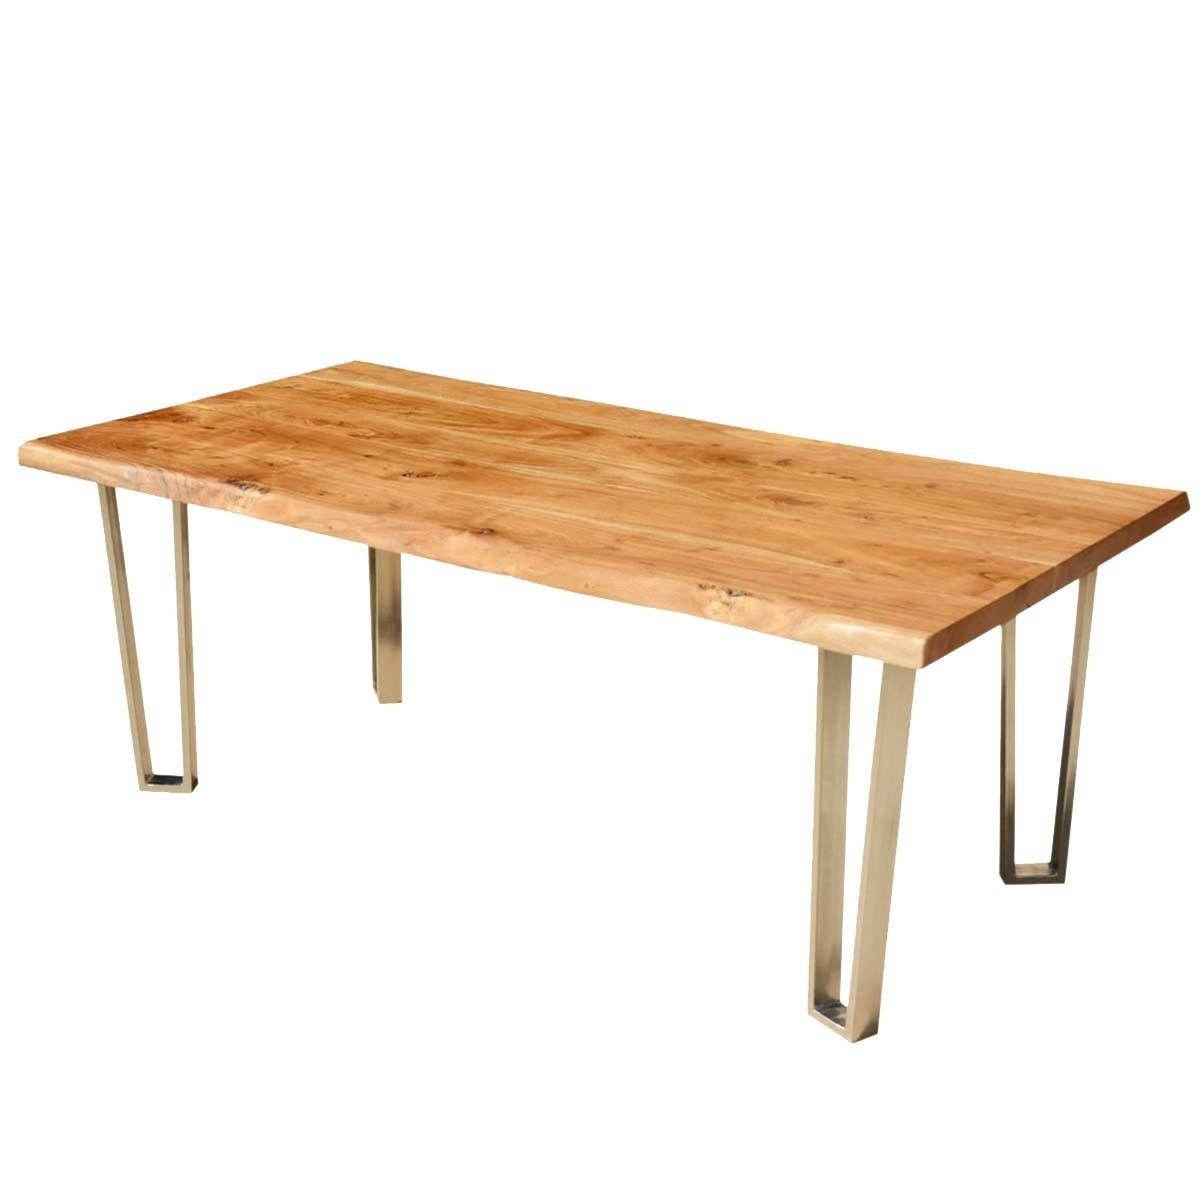 Solid Wood Iron Rustic Live Edge Dining Table